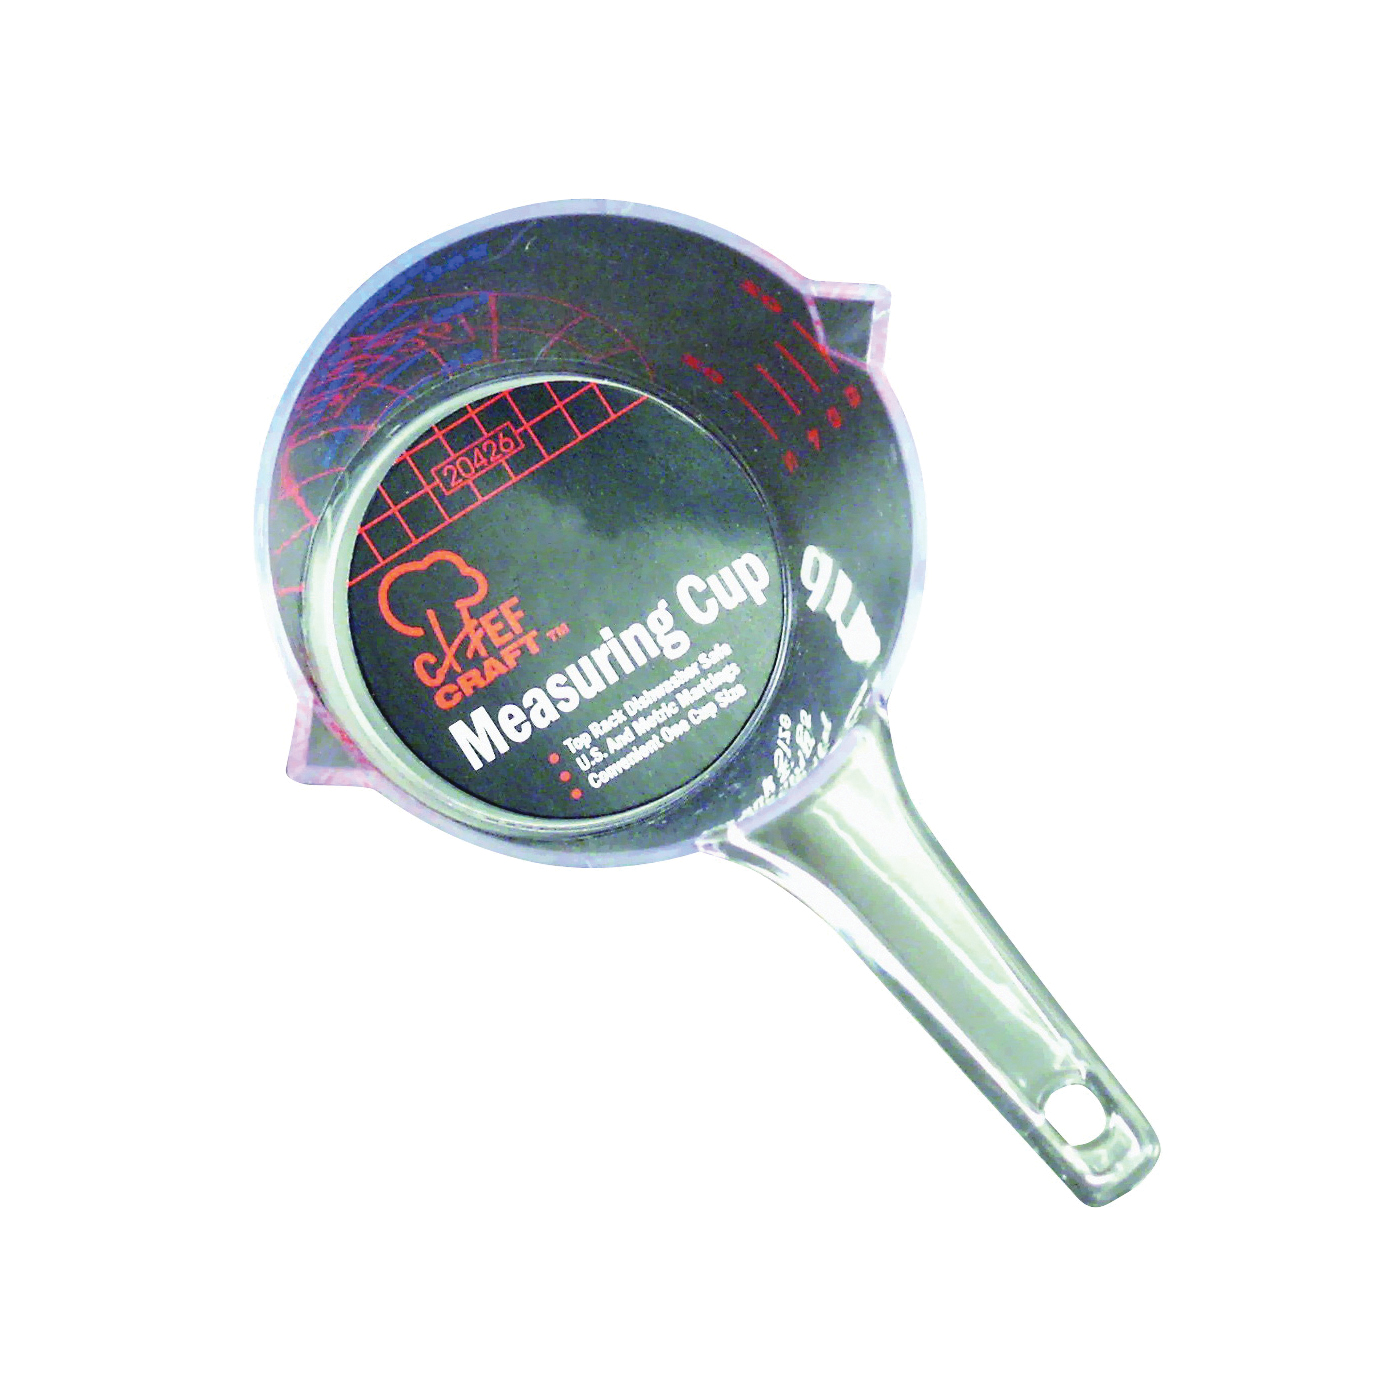 Picture of CHEF CRAFT 20426 Measuring Cup, Metric Graduation, Plastic, Clear